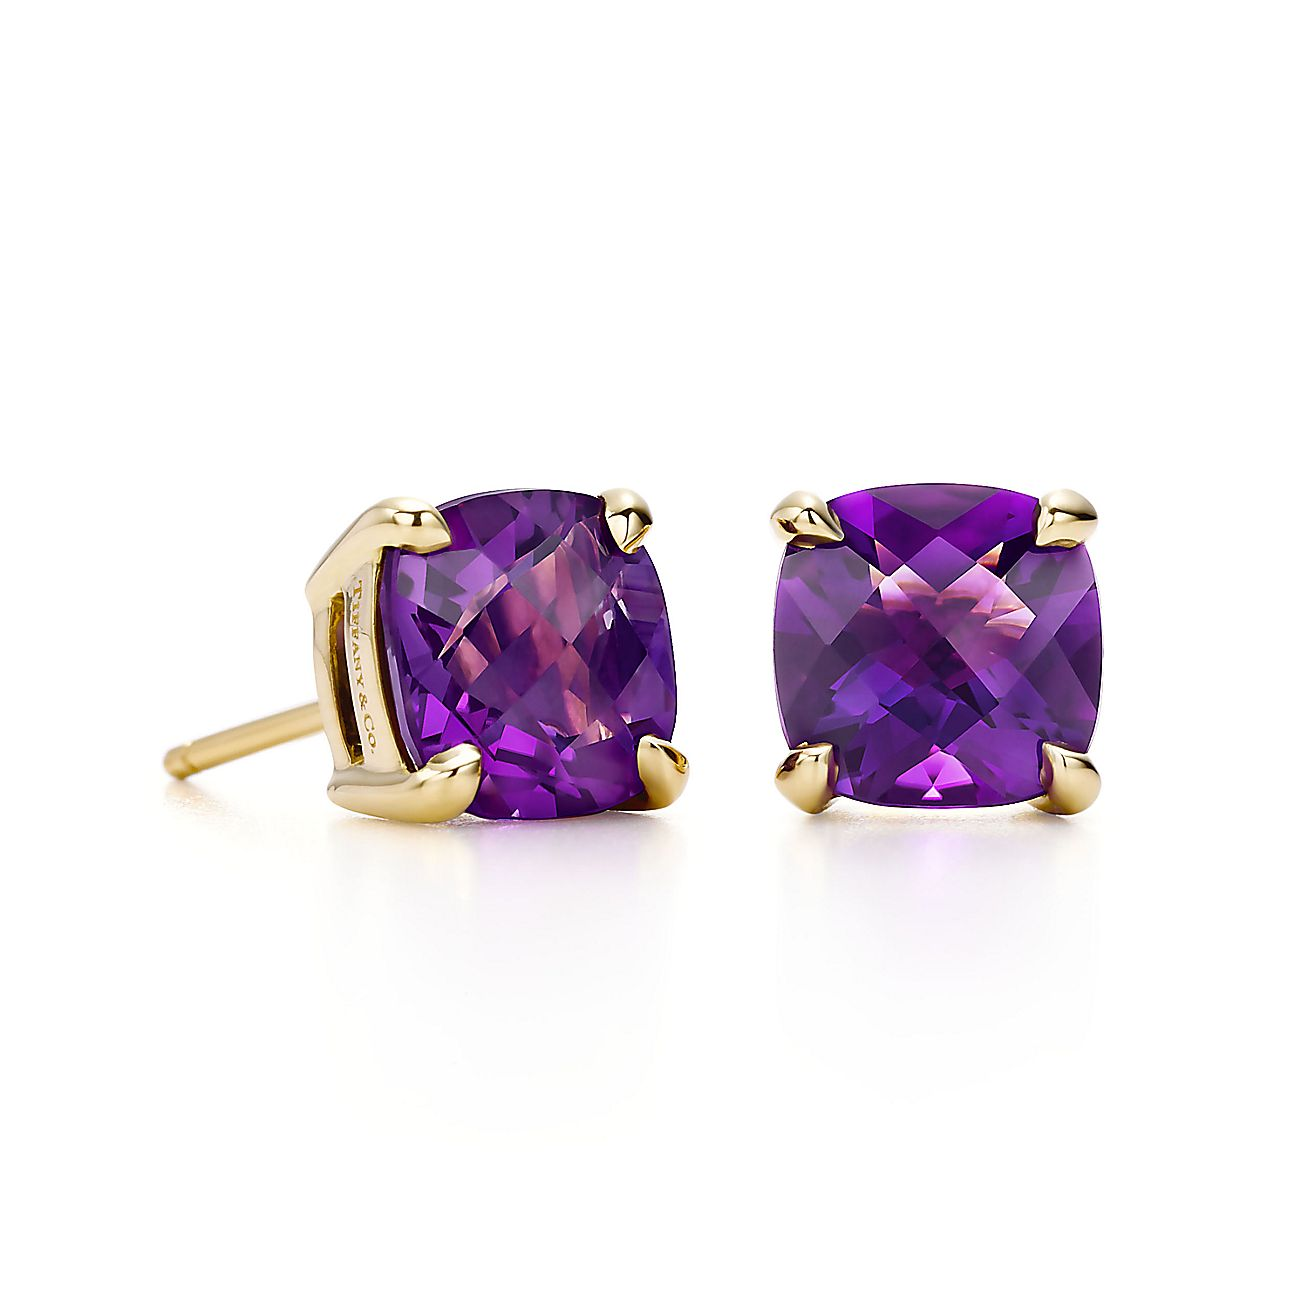 Tiffany Sparklers<br>Amethyst earrings